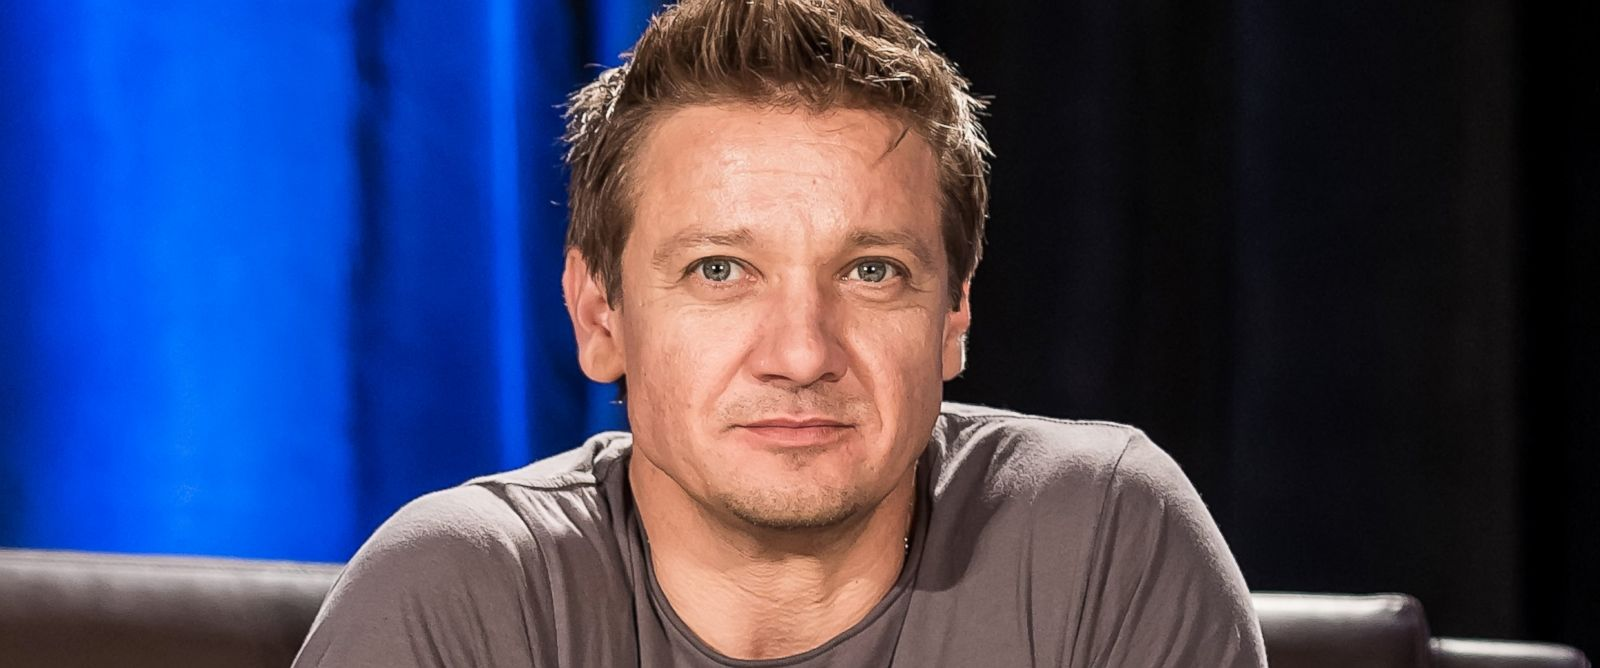 jeremy renner movies